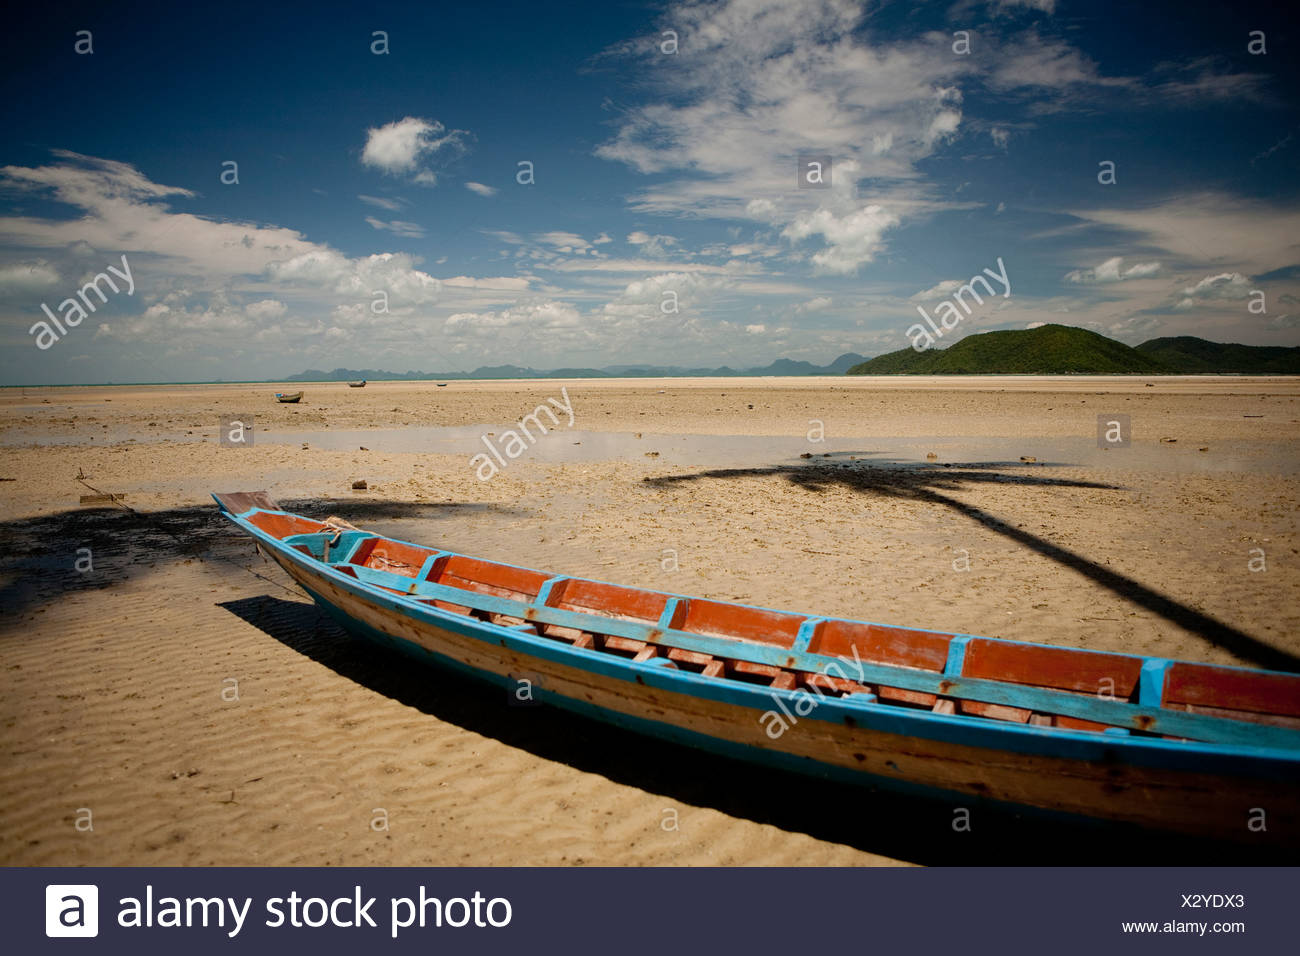 Colorful Thai fishing boat at low tide on Ko Samui in the South China Sea. - Stock Image